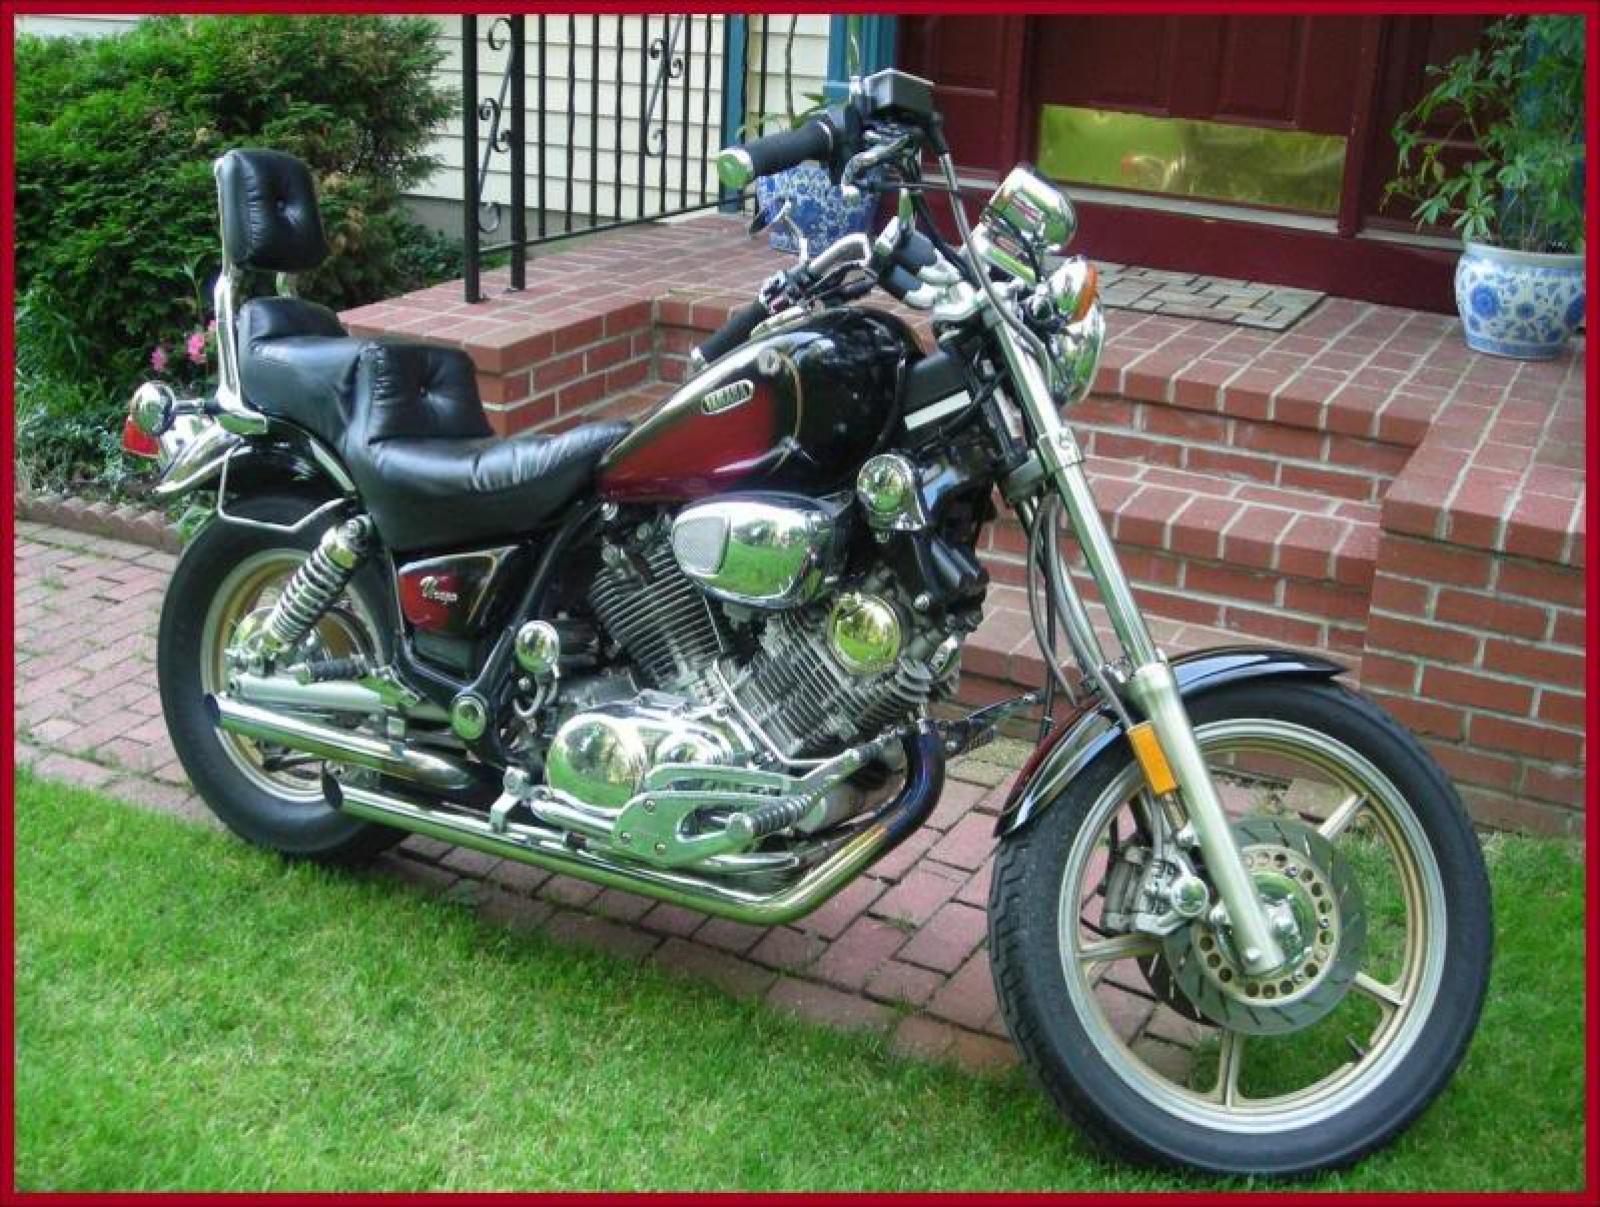 Honda Vf 750 C 1986 besides Altenator For 2003 E150 Wiring Diagram besides Honda vf 750 magna 2003 together with 1994 Honda Magna Vf750c Wiring Diagram in addition Altenator For 2003 E150 Wiring Diagram. on 1999 honda vf750c magna